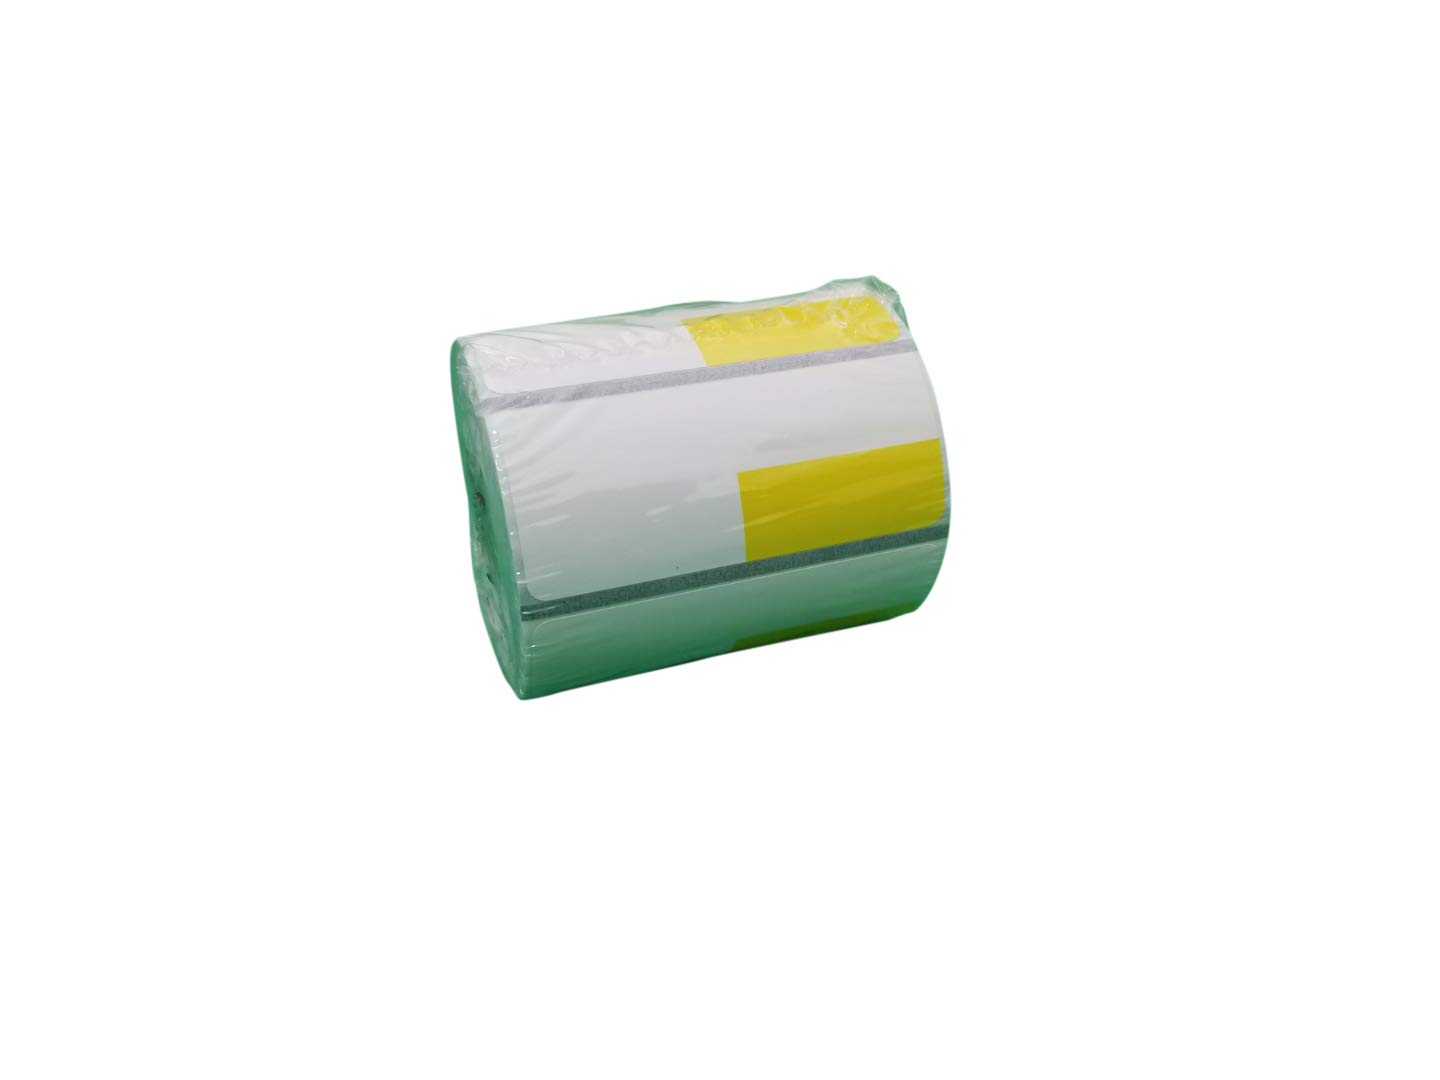 Zebra 2 5/8 x 1 1/8(2.25 x 1.25) inch Direct Thermal Polypropylene Labels 4000D, Yellow(Left Top) Price tag, Direct Thermal Label, 500 Per Roll, 24 Rolls/Box by VisionTechShop (Image #1)